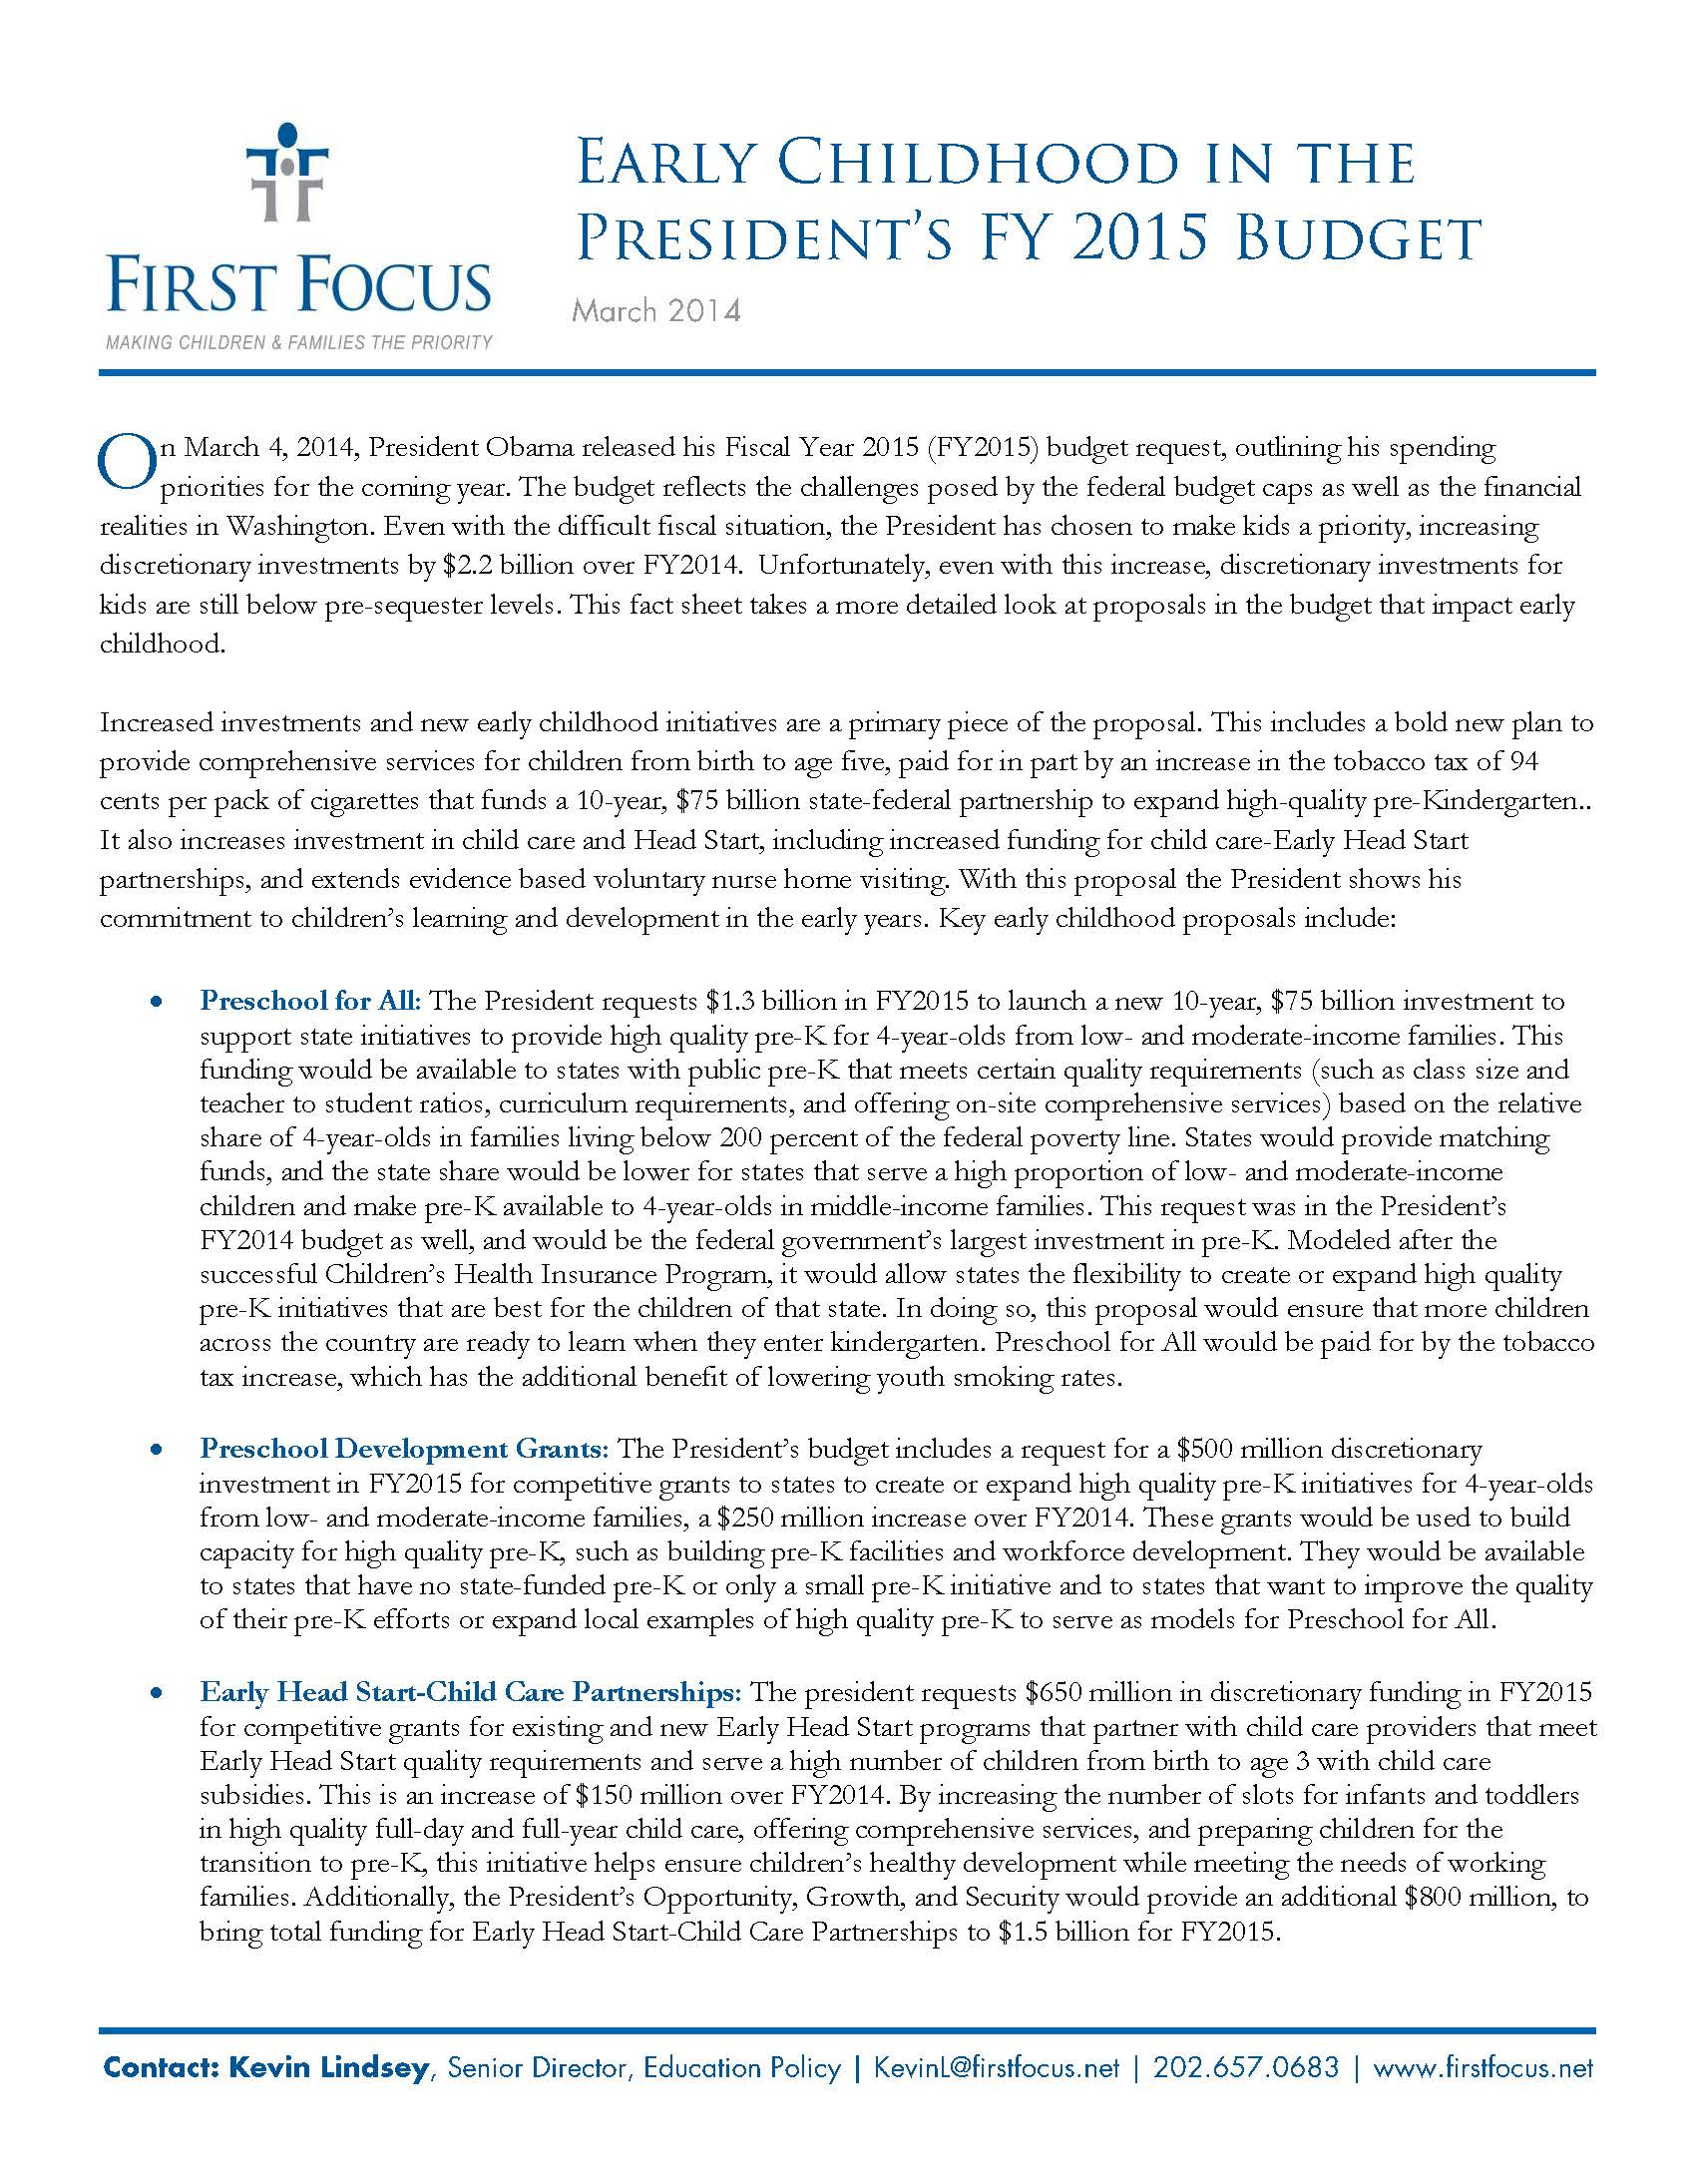 Early Childhood in Presidents FY2015 Budget_Page_1